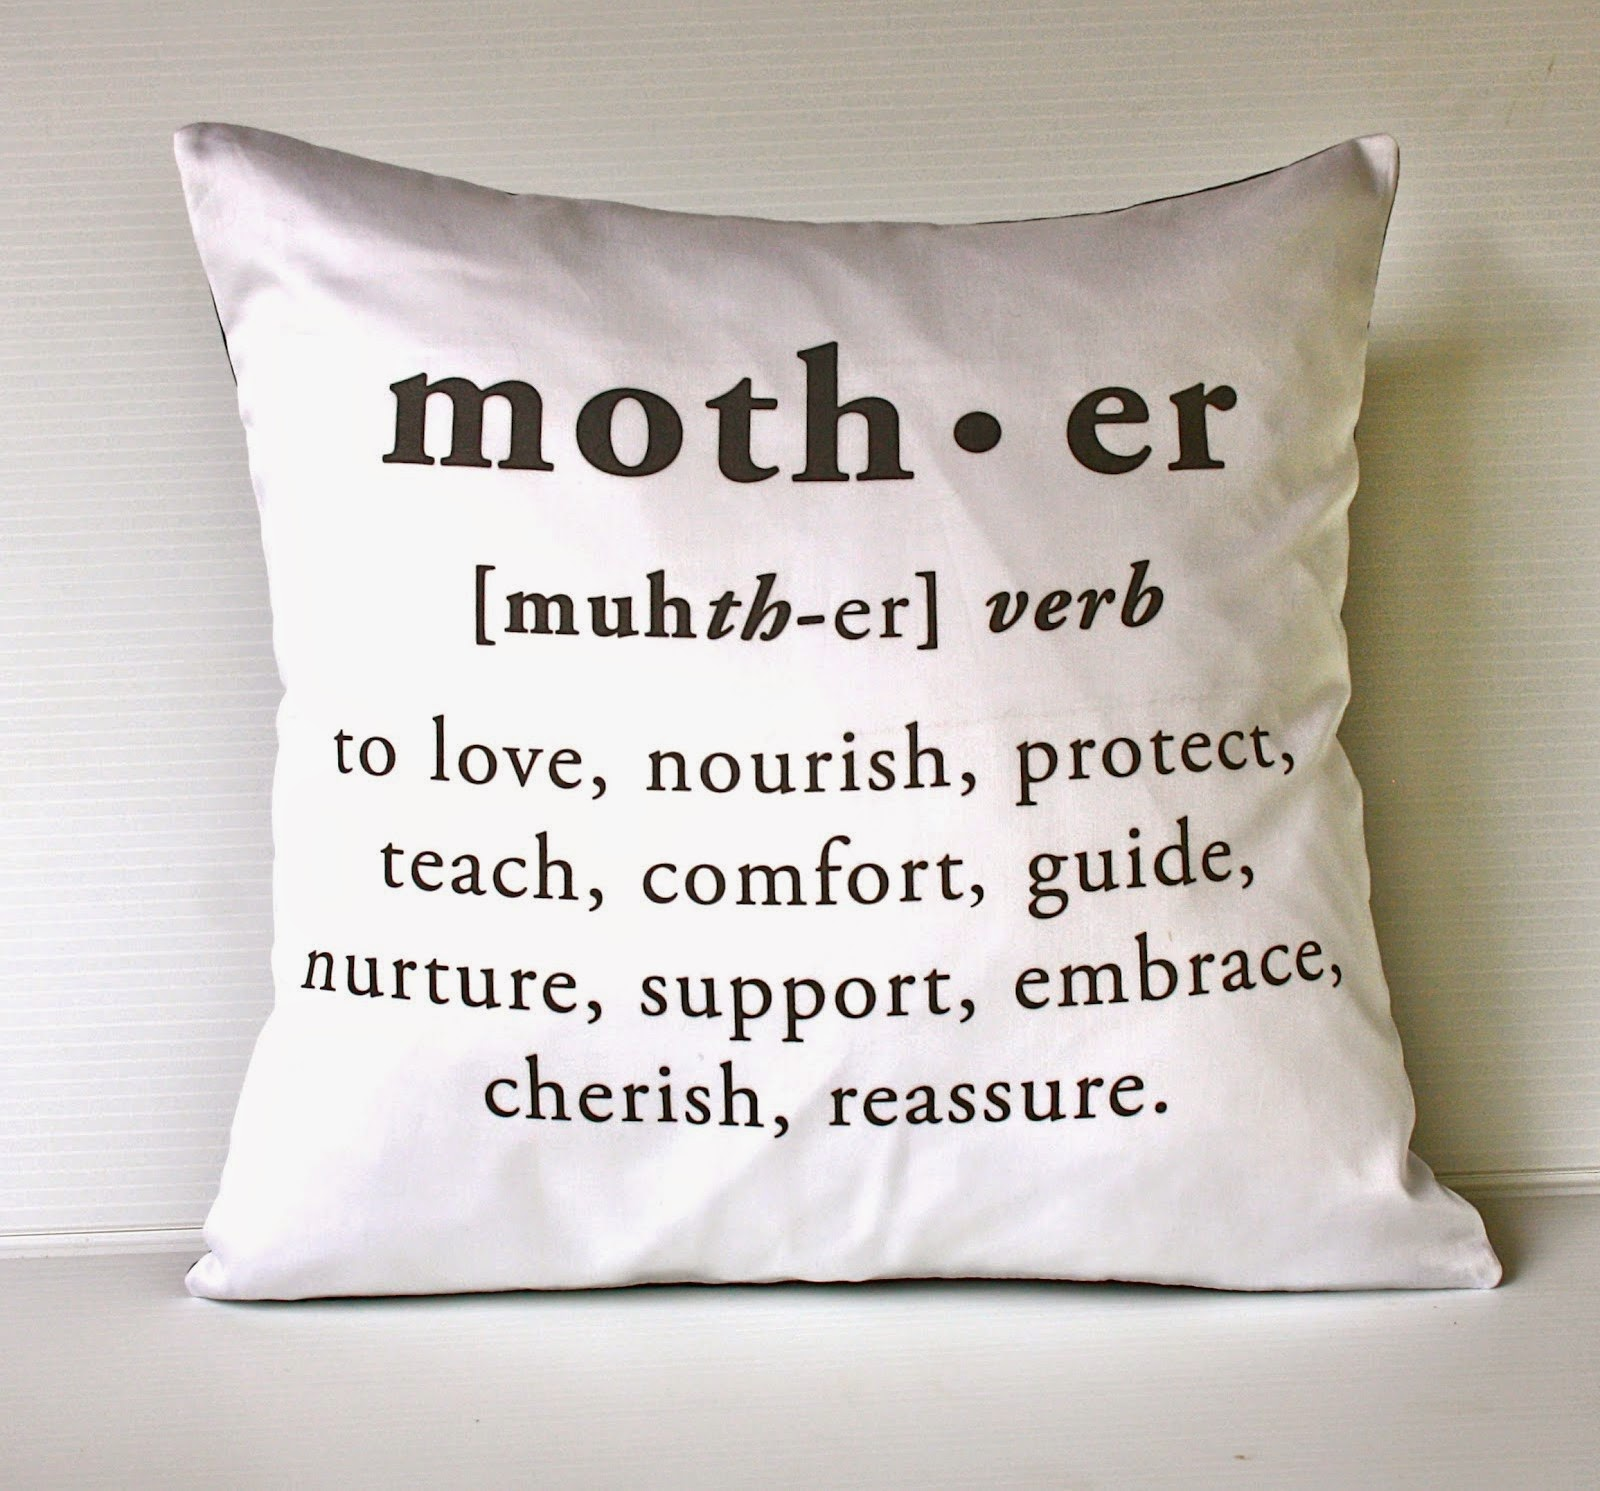 How  Letter Words Can I Get From Pillow